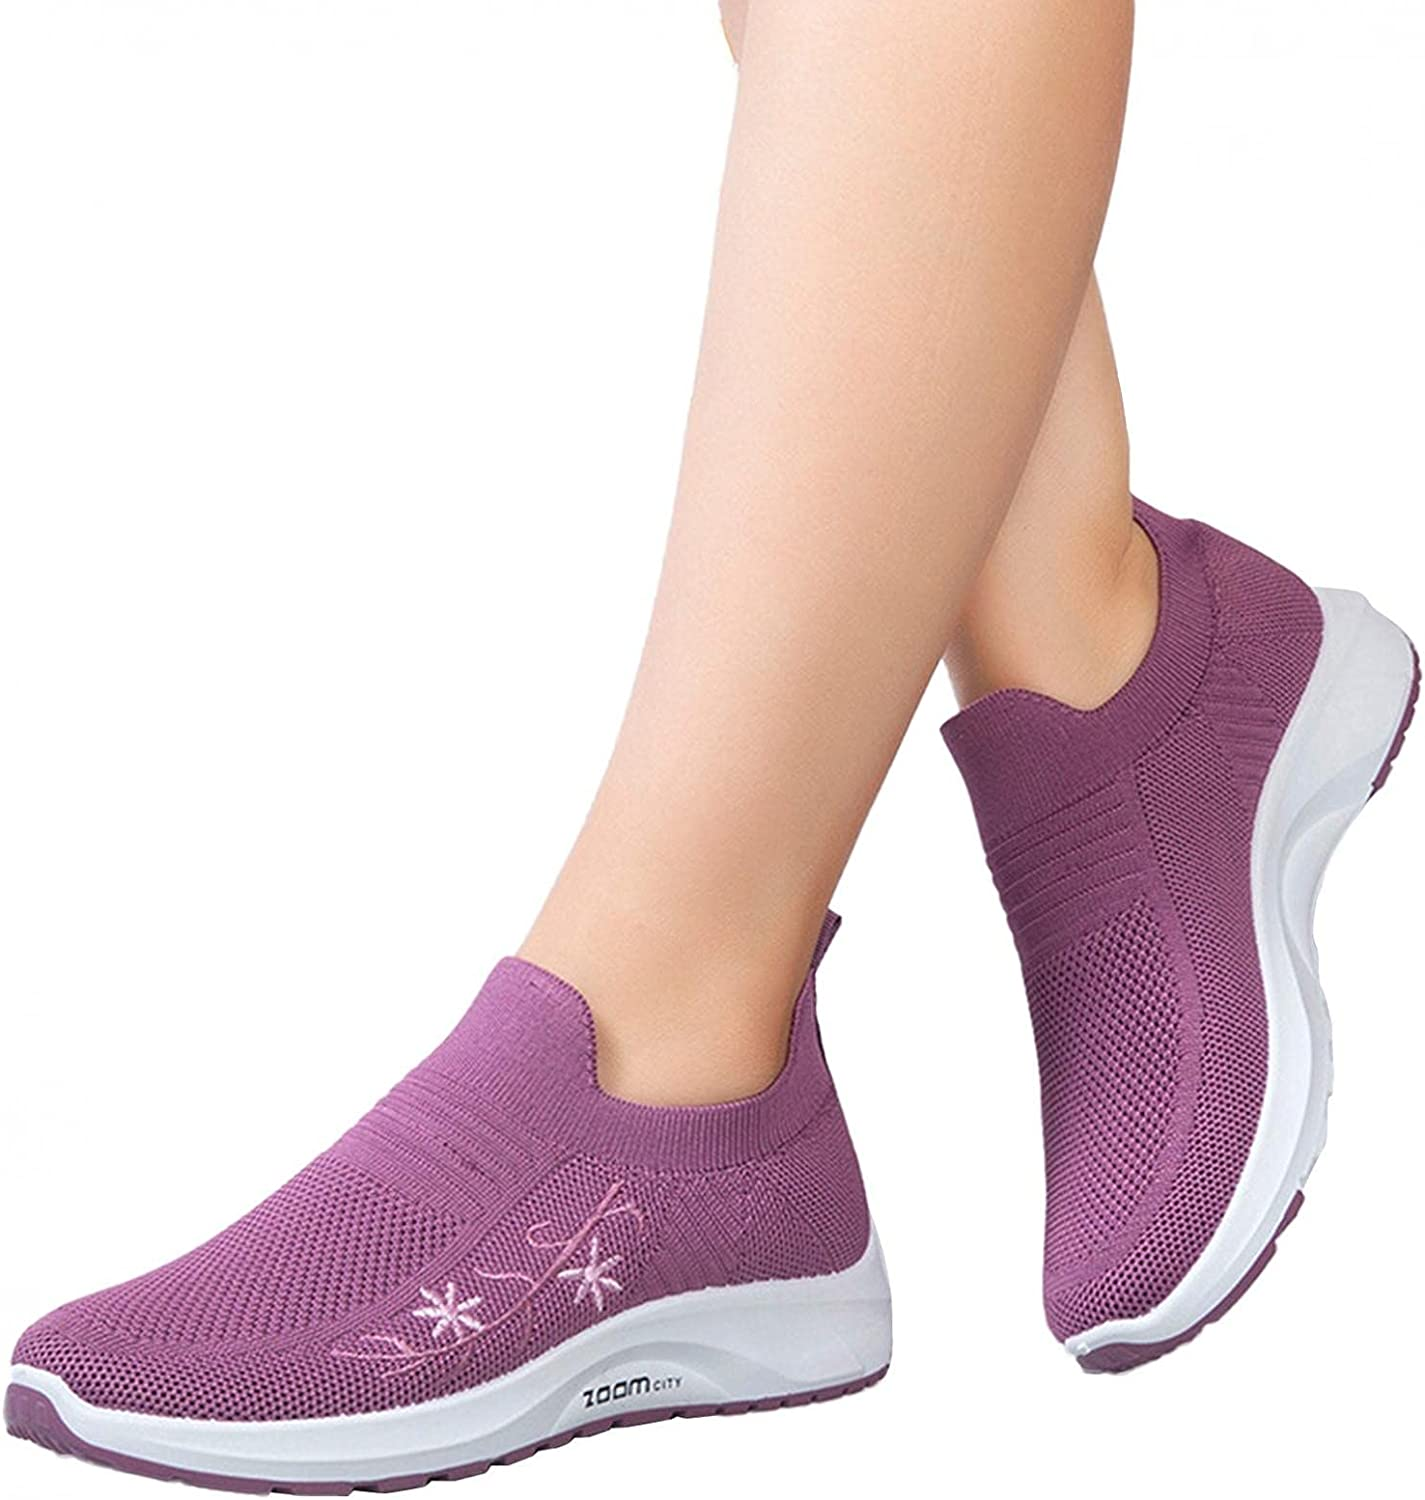 Hbeylia Wedge Walking Running Shoes Comfortable Lightweight Breathable Slip On Sock Platform Sneakers Outdoor Air Cushion Athletic Sports Tennis Hiking Shoes For Women Ladies Work Nurse